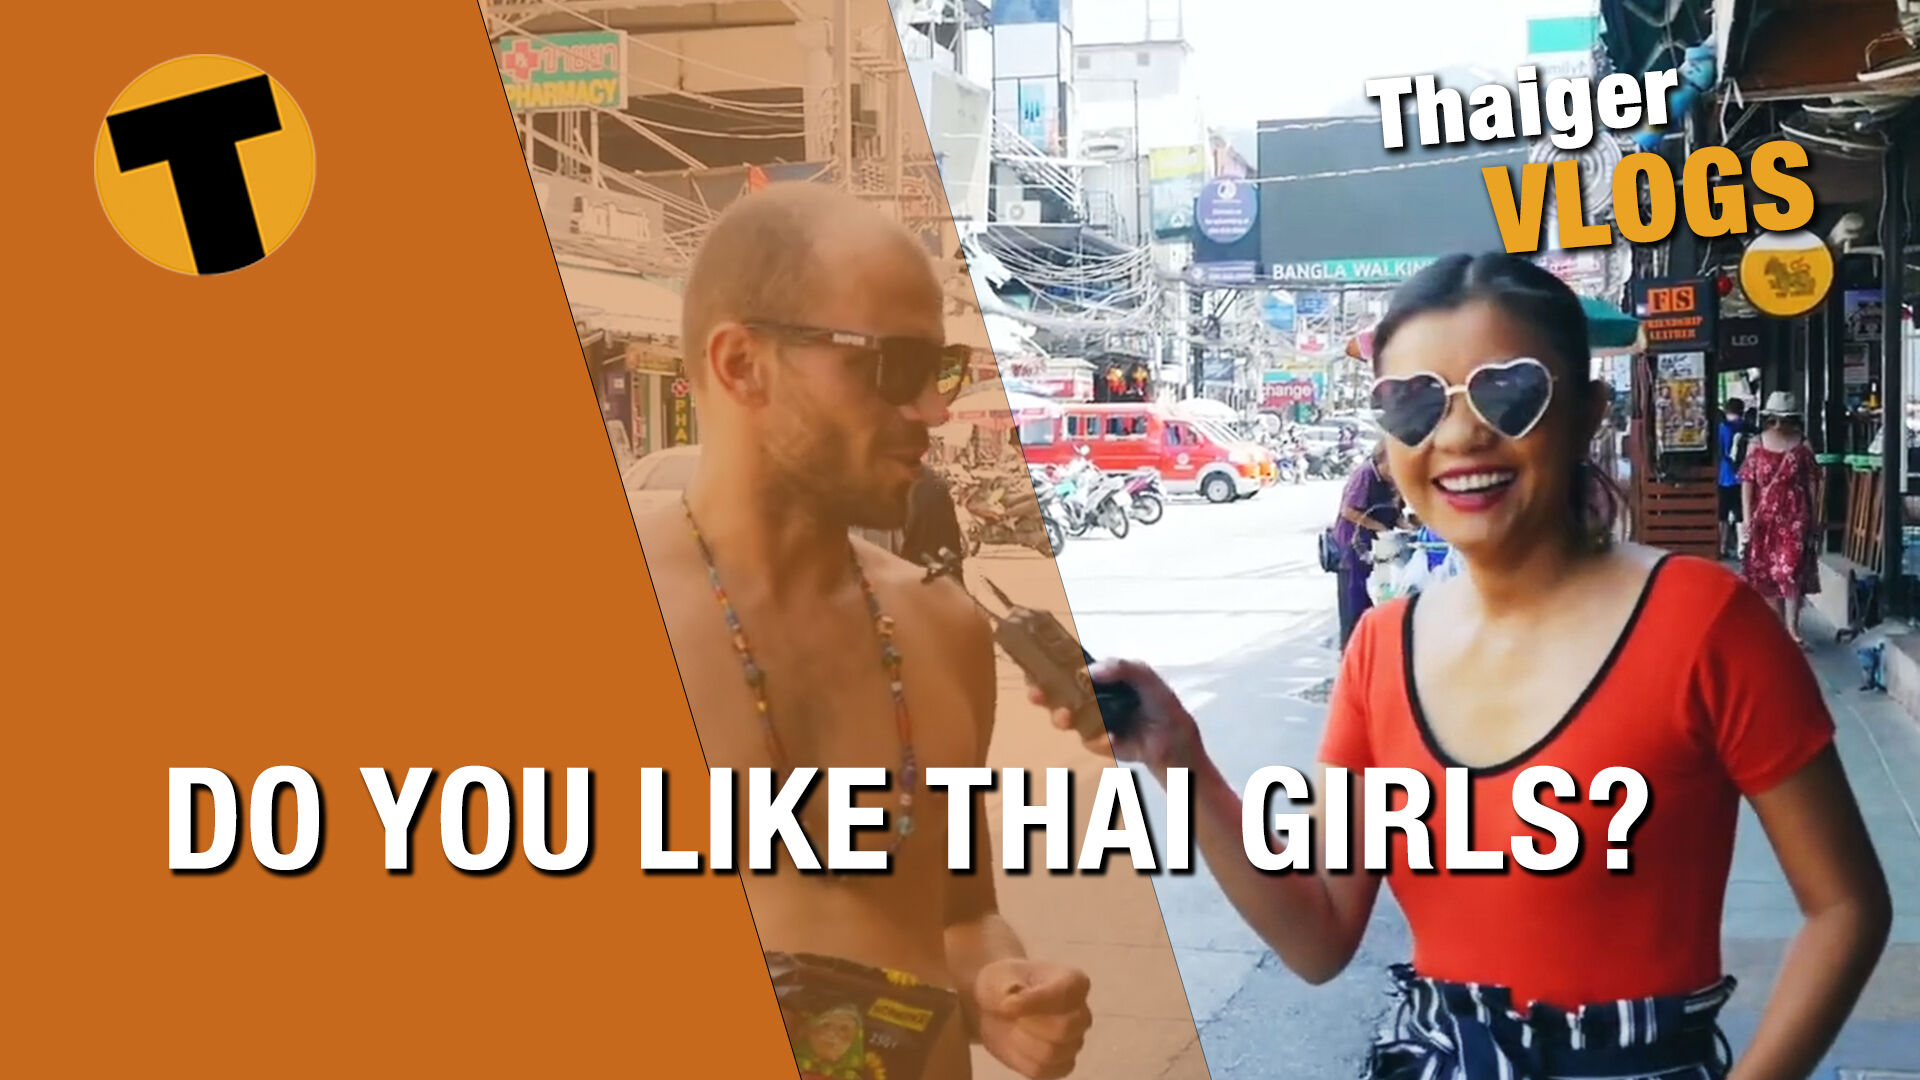 Why do foreign men like Thai women? A Thaiger vlogger wants to know | Thaiger